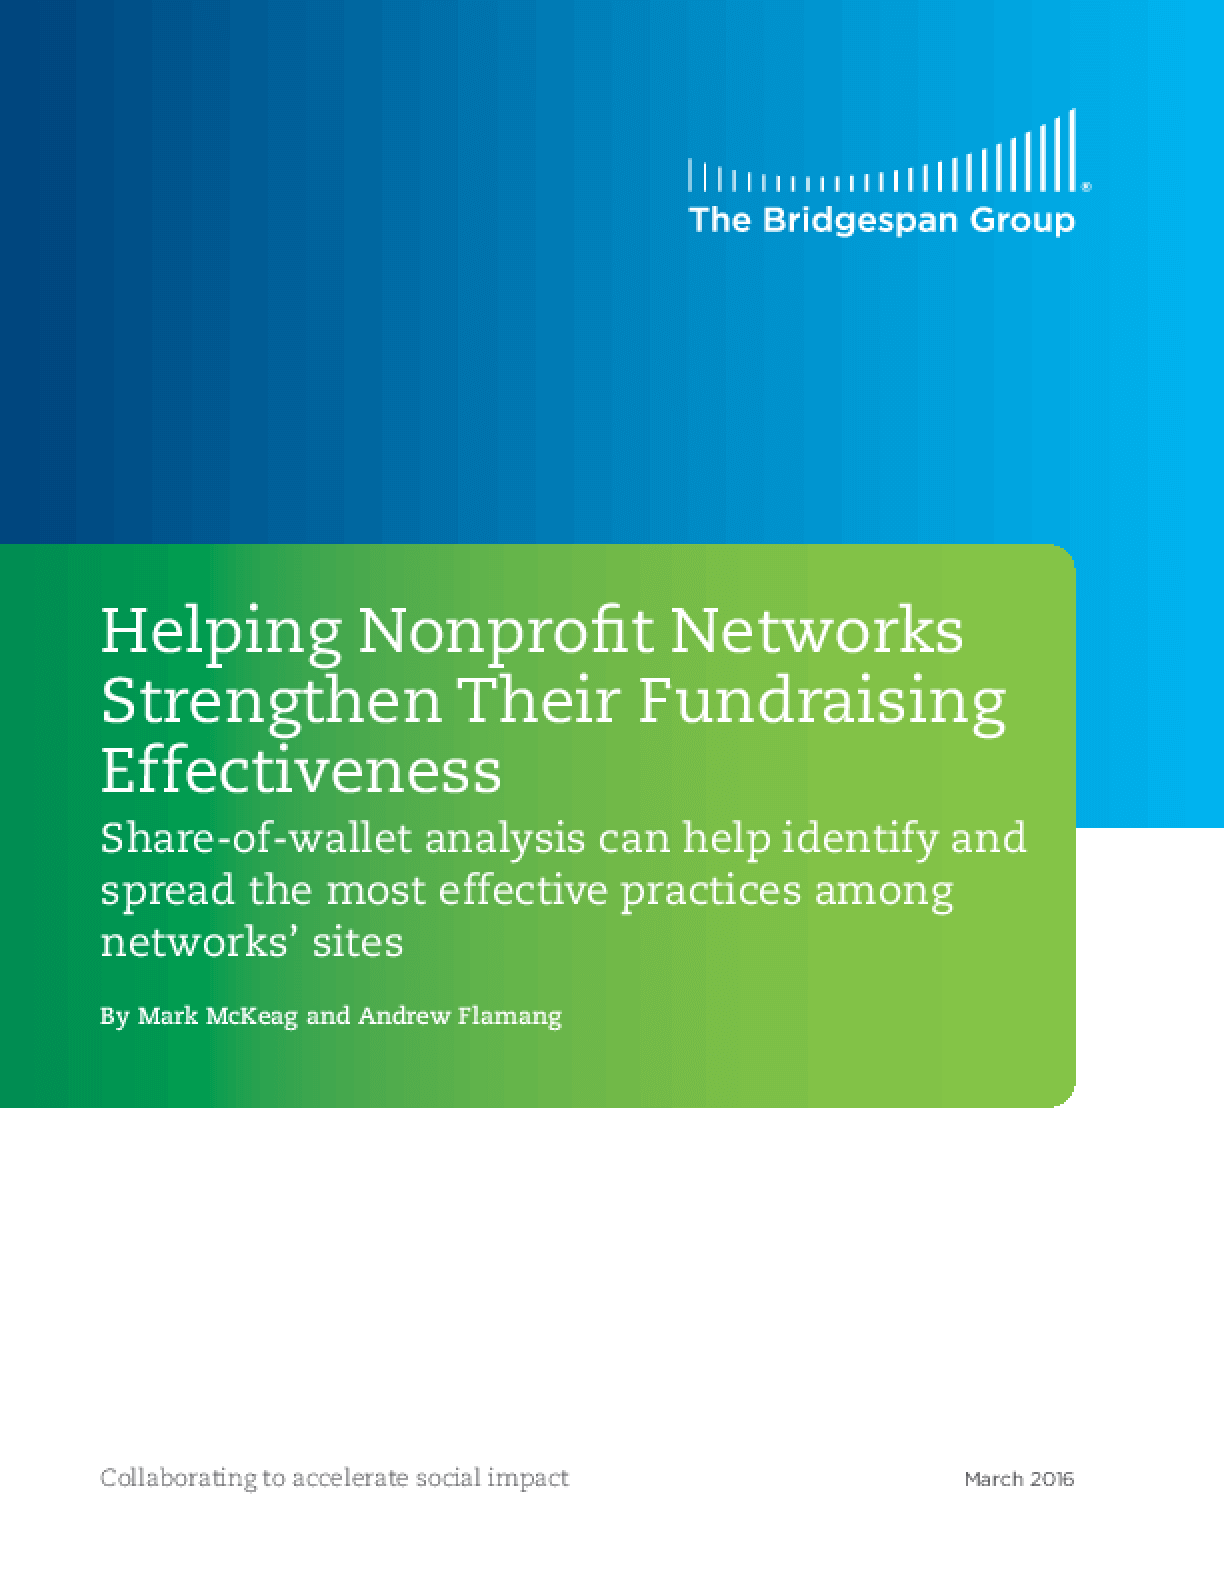 Helping Nonprofit Networks Strengthen Their Fundraising Effectiveness: Share-of-Wallet Analysis Can Help Identify and Spread the Most Effective Practices among Networks' Sites